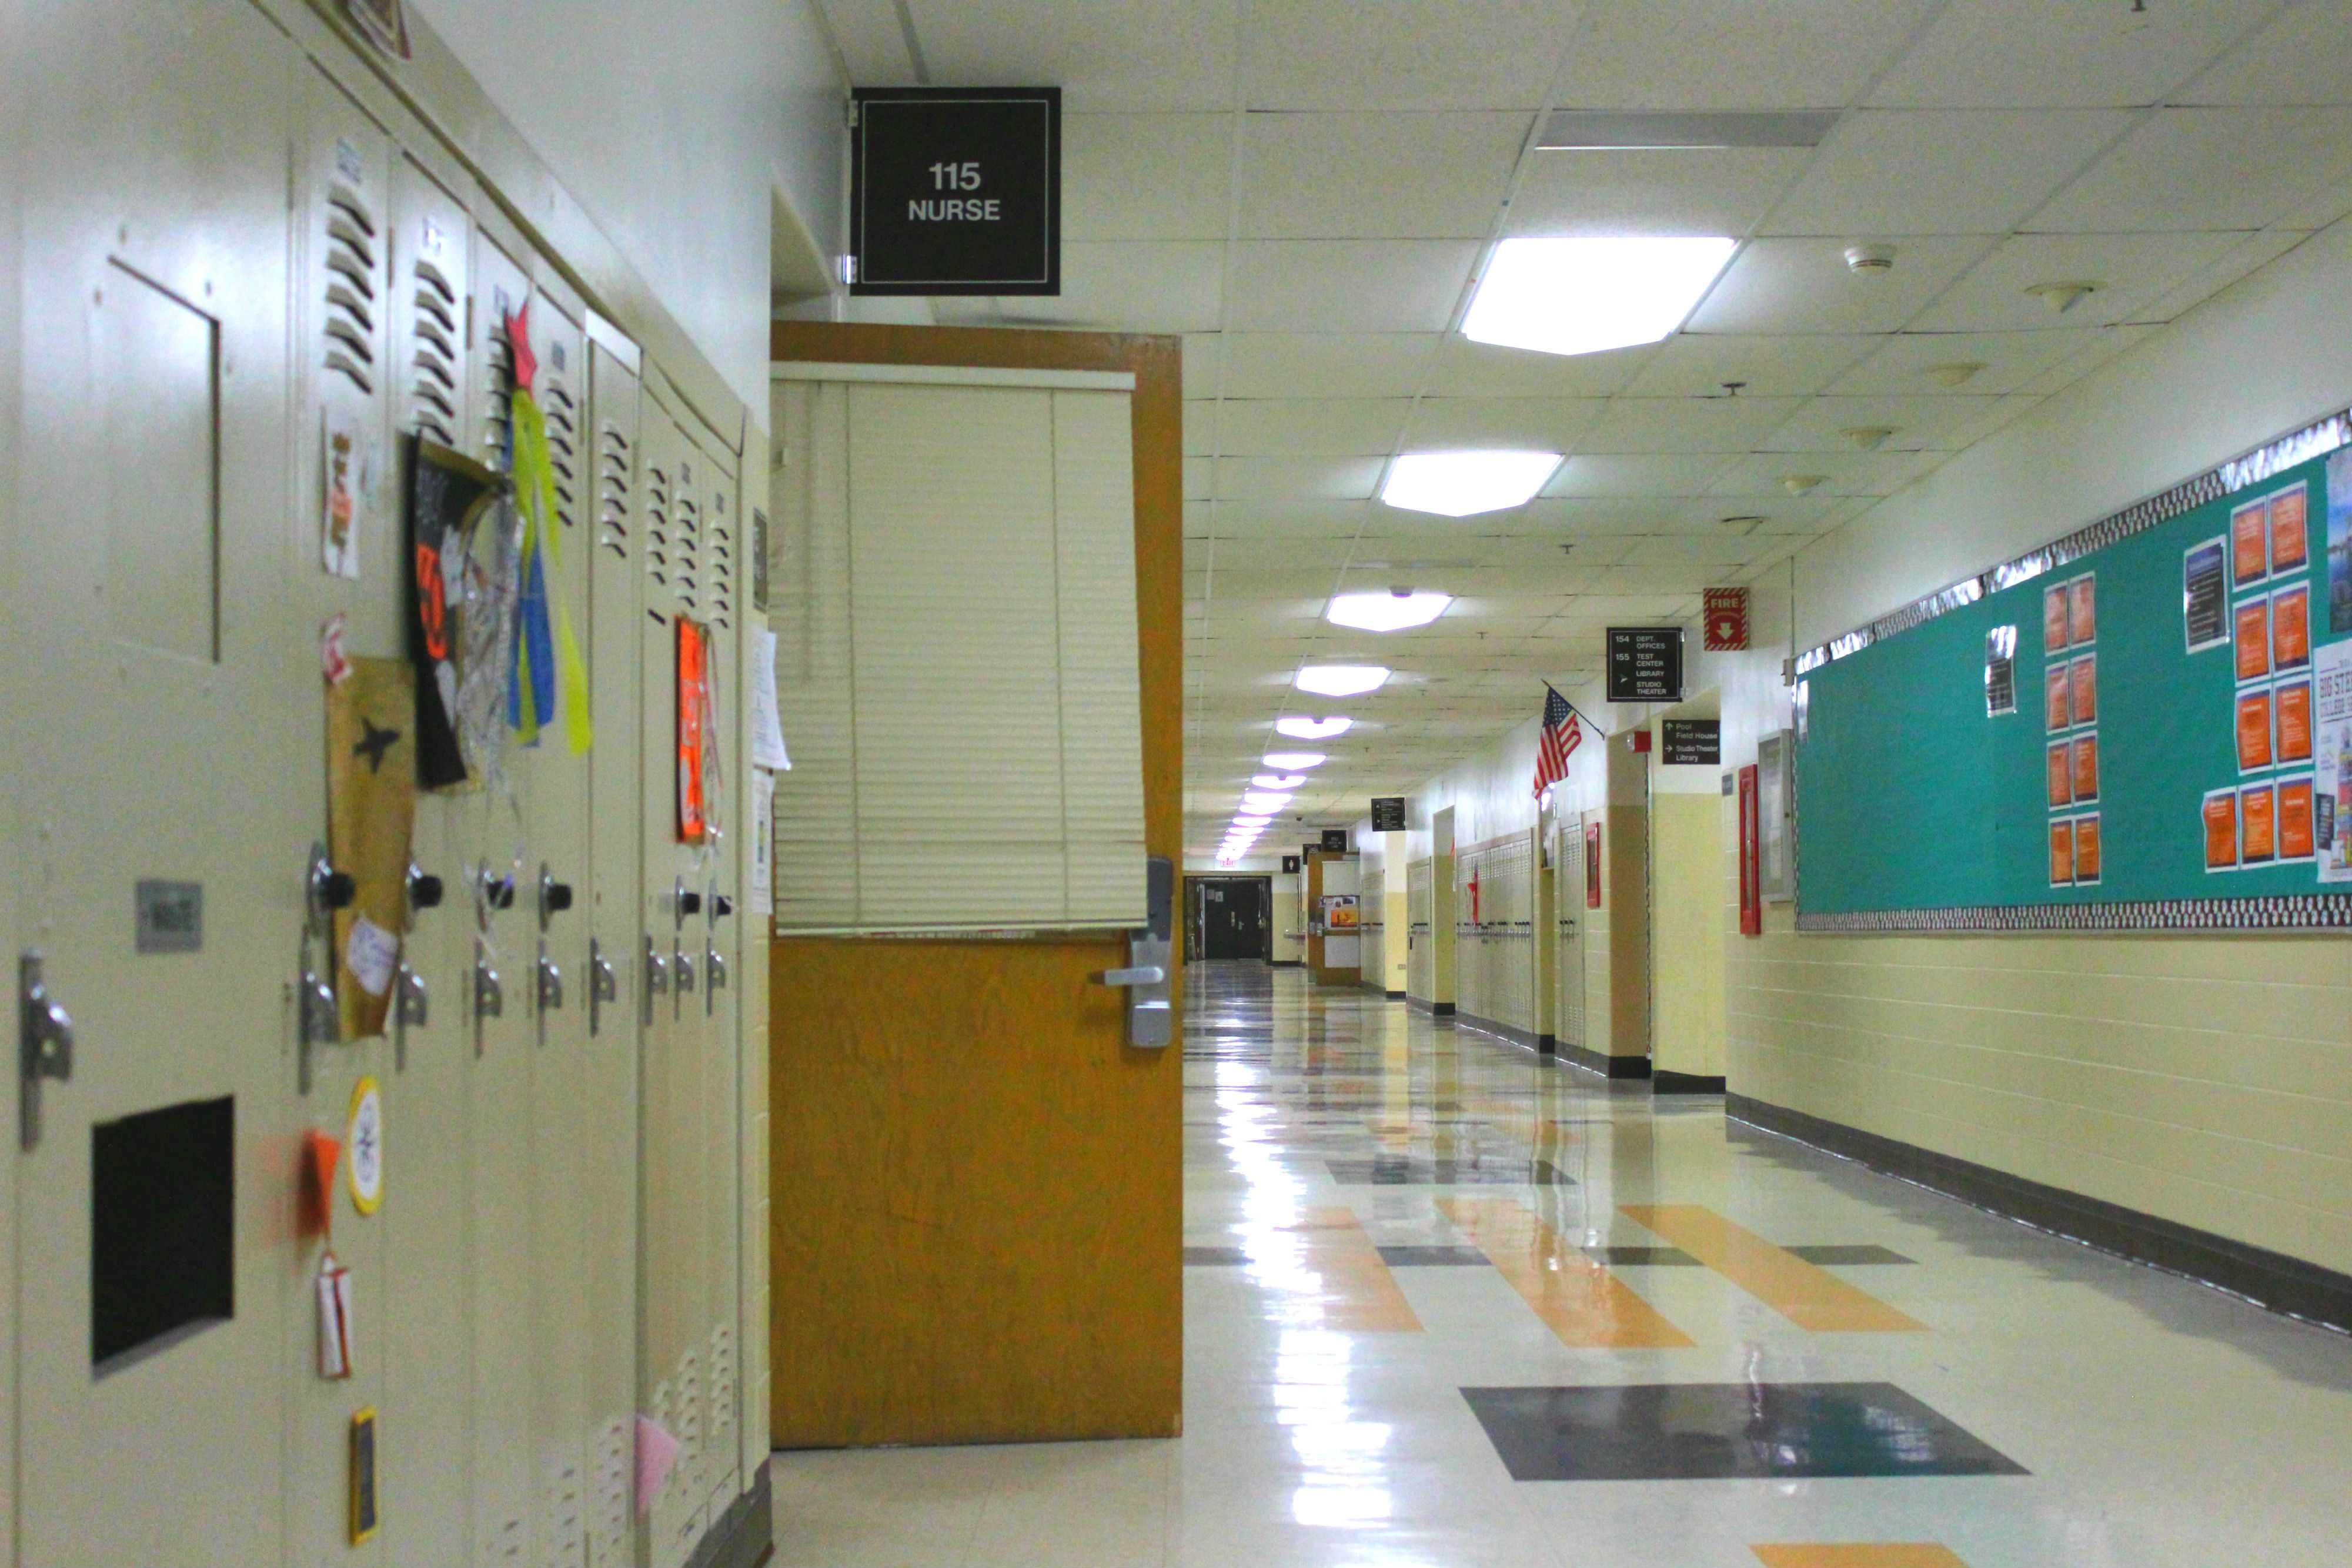 Over the course of this winter, LHS students have seen everything from whooping cough to the common cold, and more recently, the potential for the spread of mumps. The school nurses encourage students, as always, to wash their hands, cough into their elbows and maintain a high immune system through plenty of sleep, in order to prevent the spread of germs.